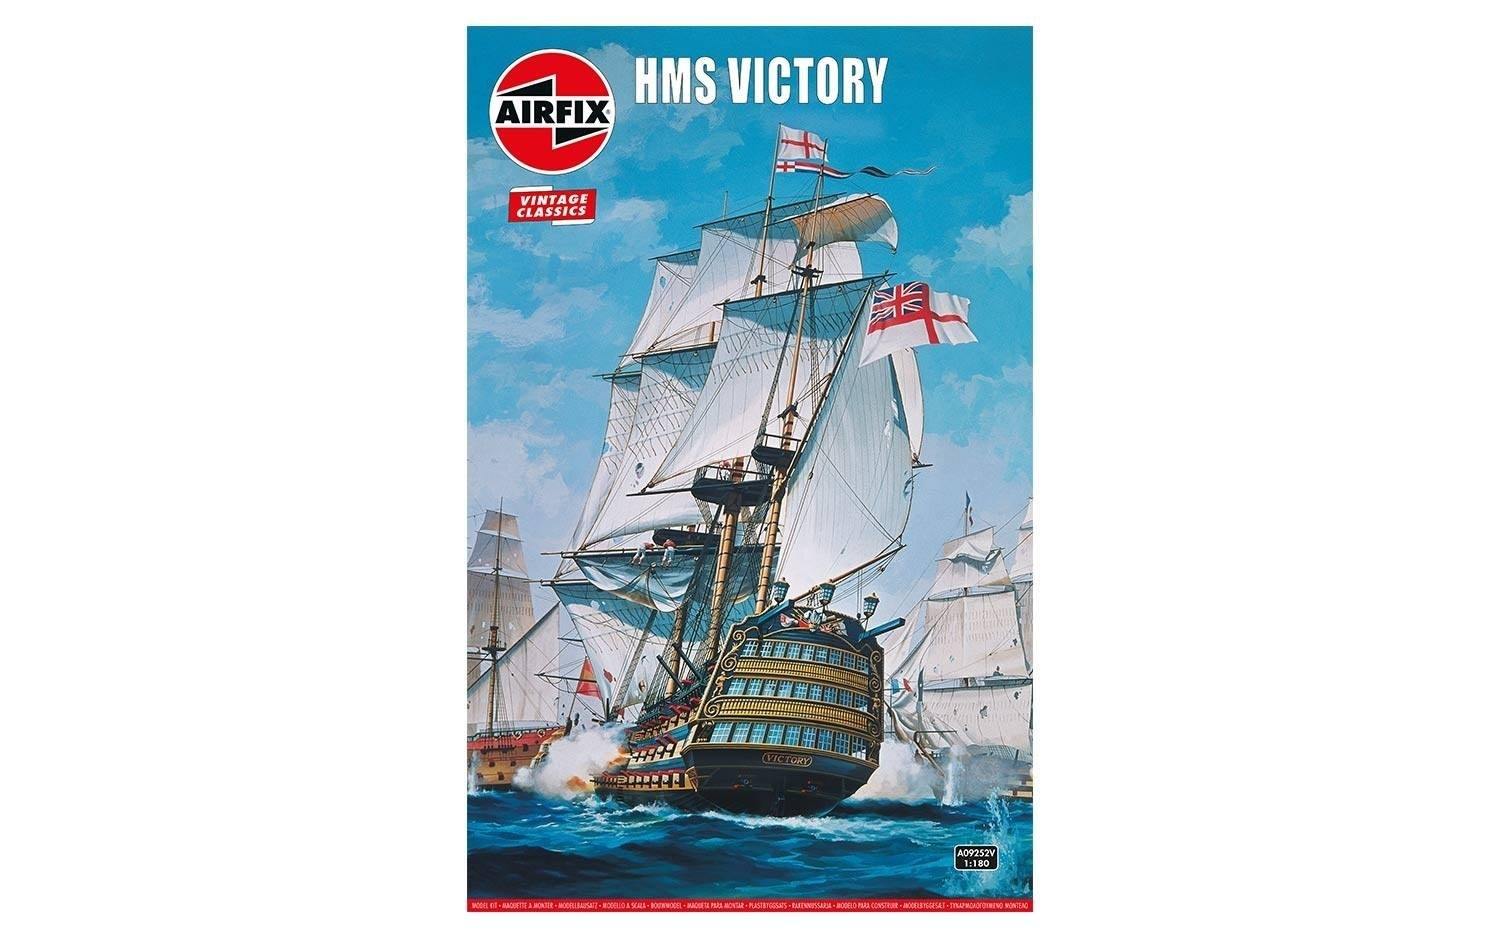 Airfix Vintage Classics HMS Victory 1765 1:180 Military Royal Naval Ship Plastic Model Kit A09252V